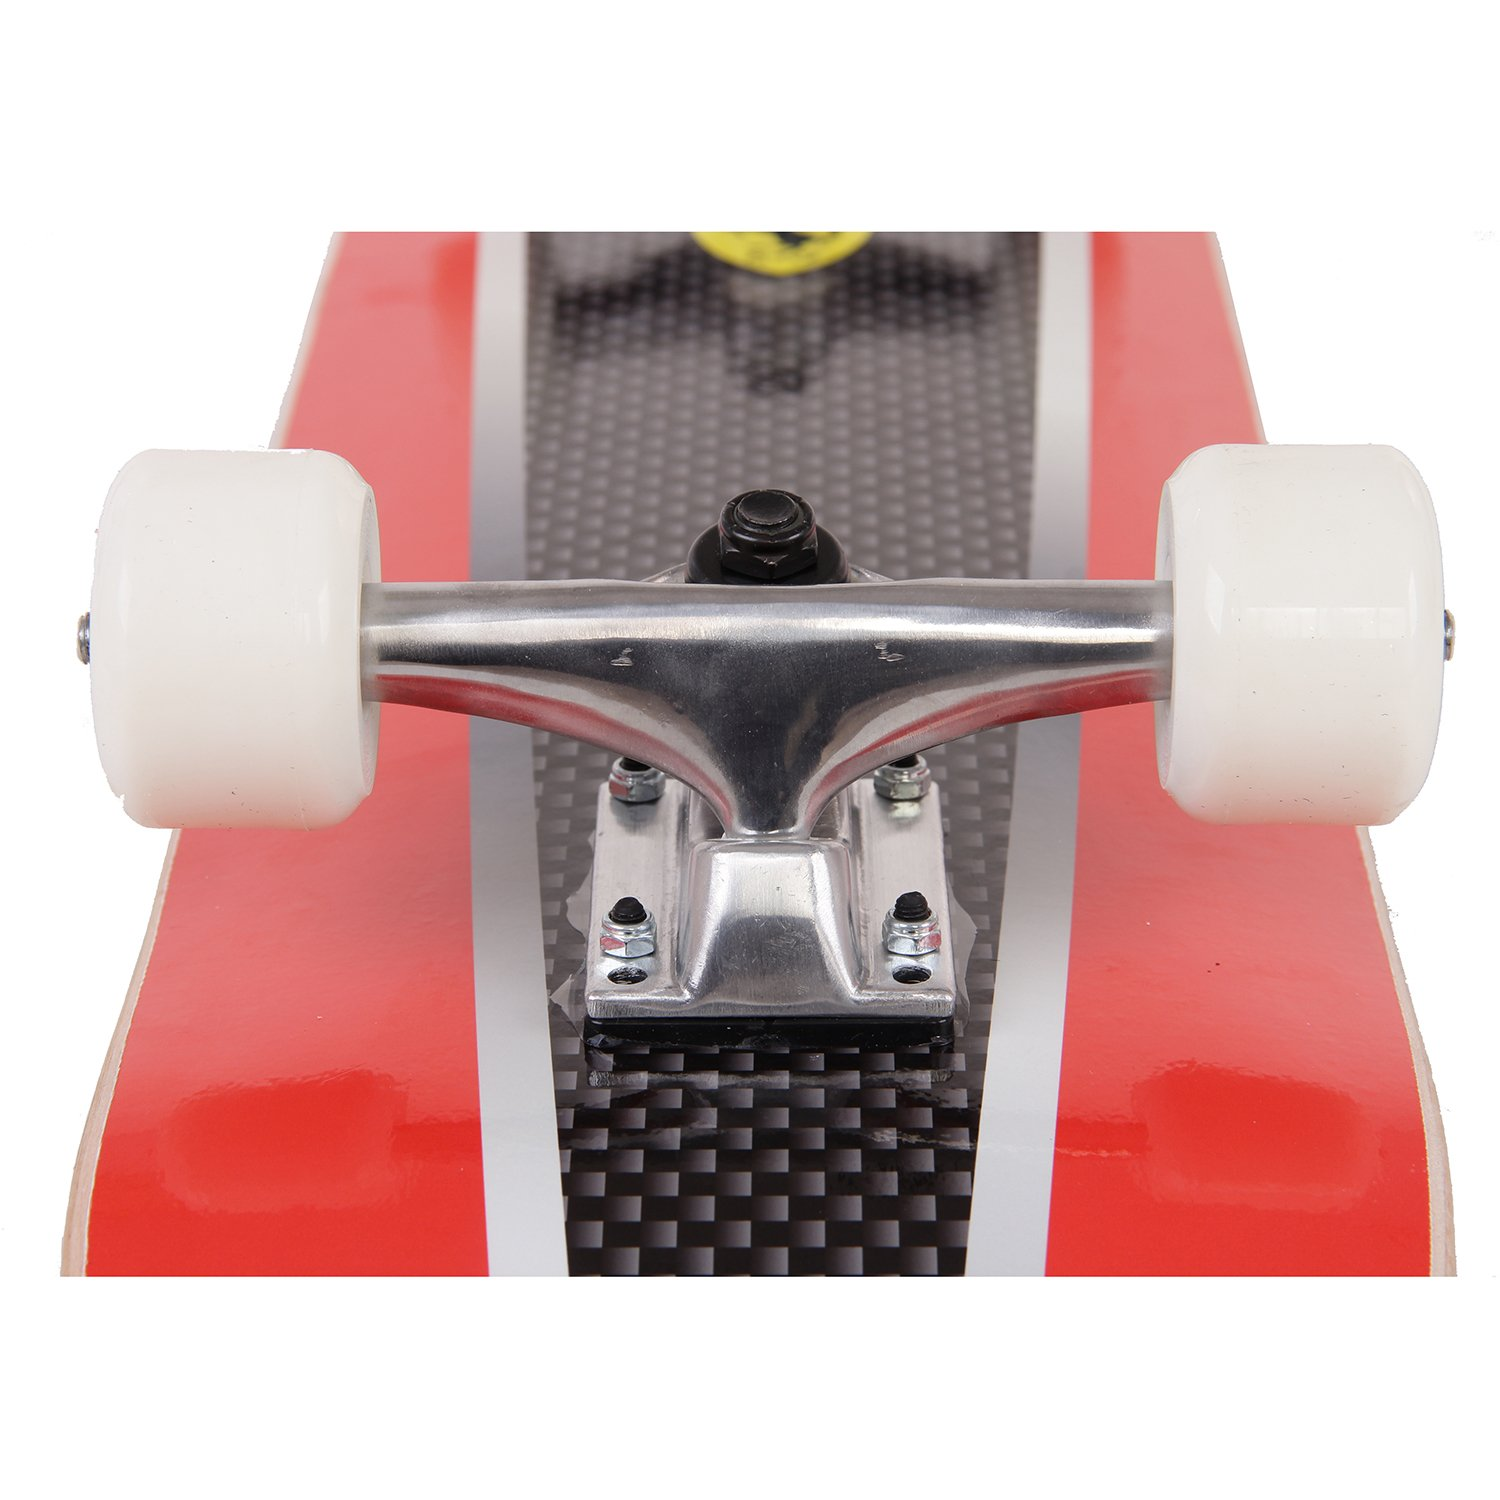 Amazon.com : Ferrari Double Kick Skateboard, Medium, Red : Sports & Outdoors